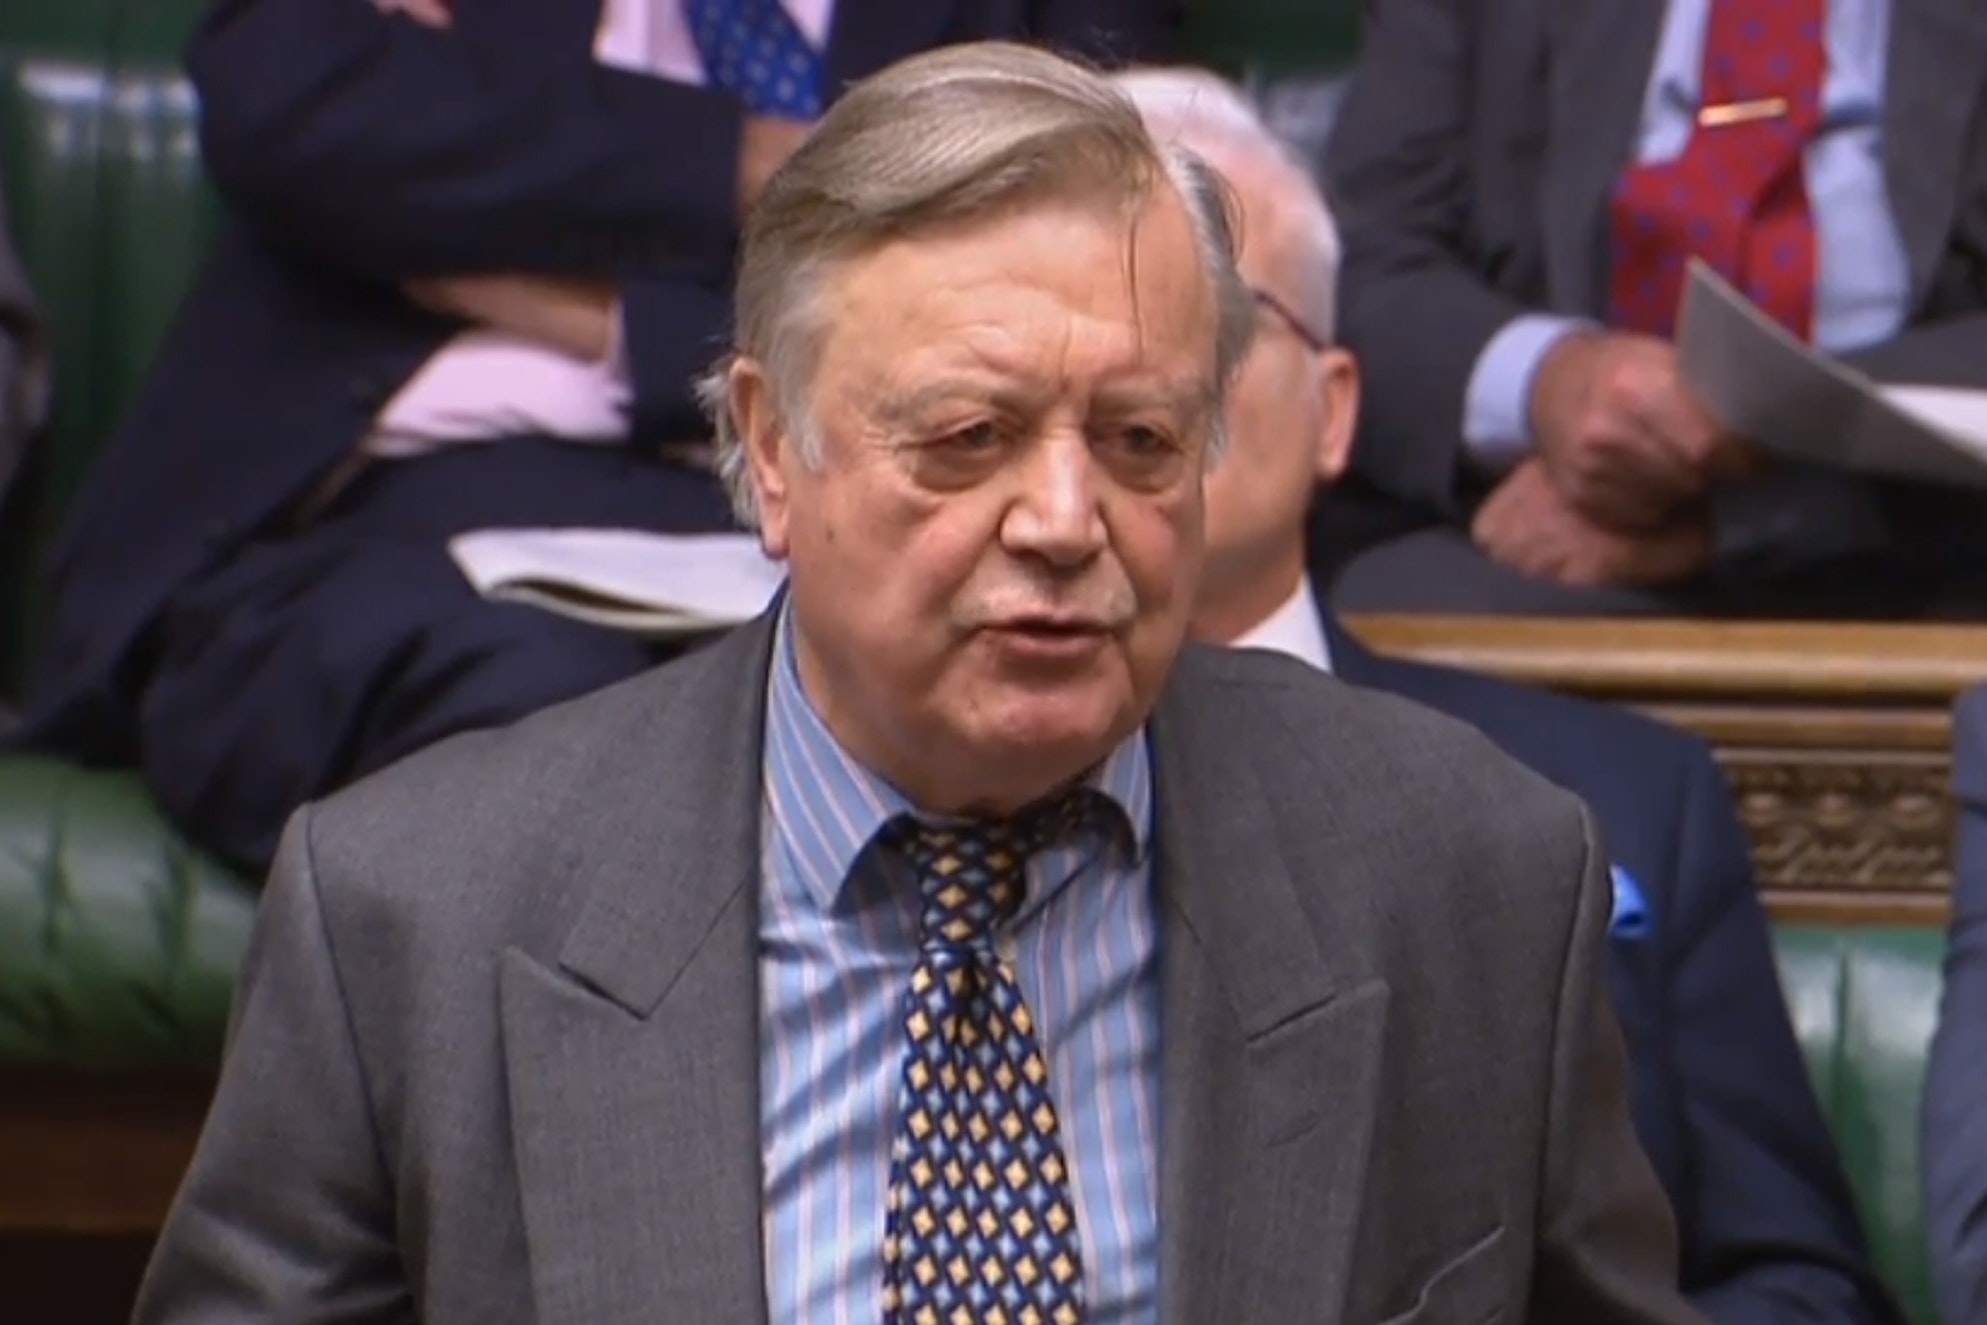 Conservative MP Ken Clarke